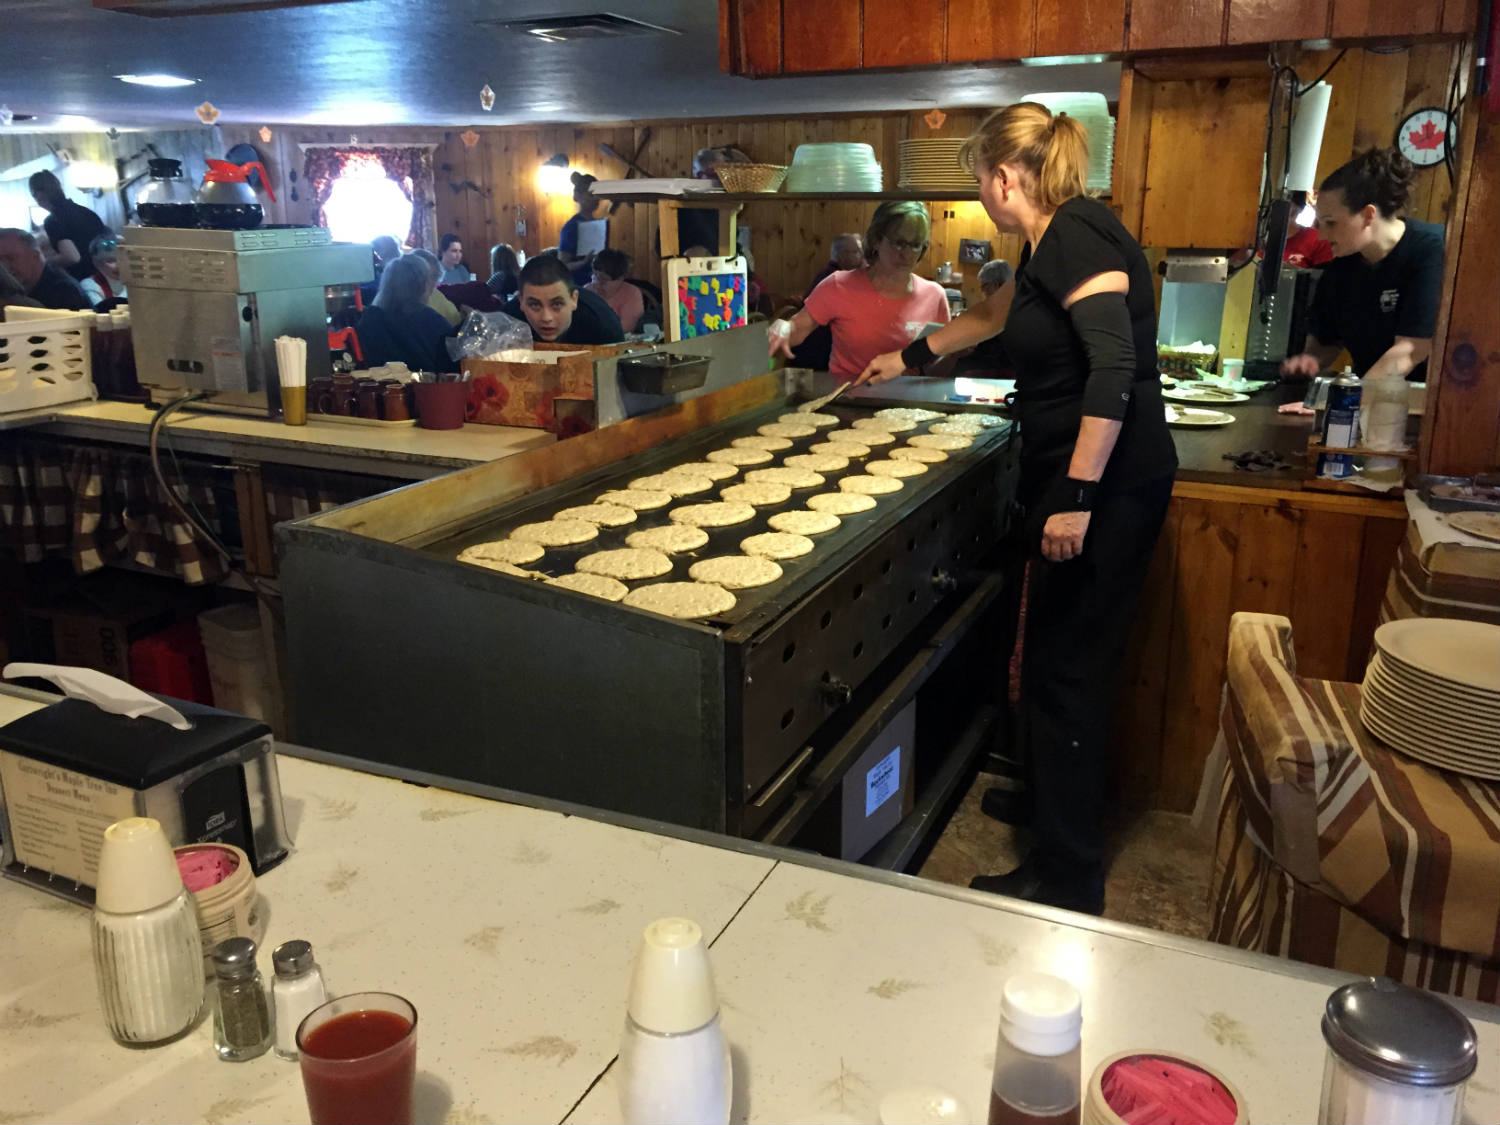 Buckwheat pancakes on the grill at Cartwright's Maple Tree Inn in Angelica, NY